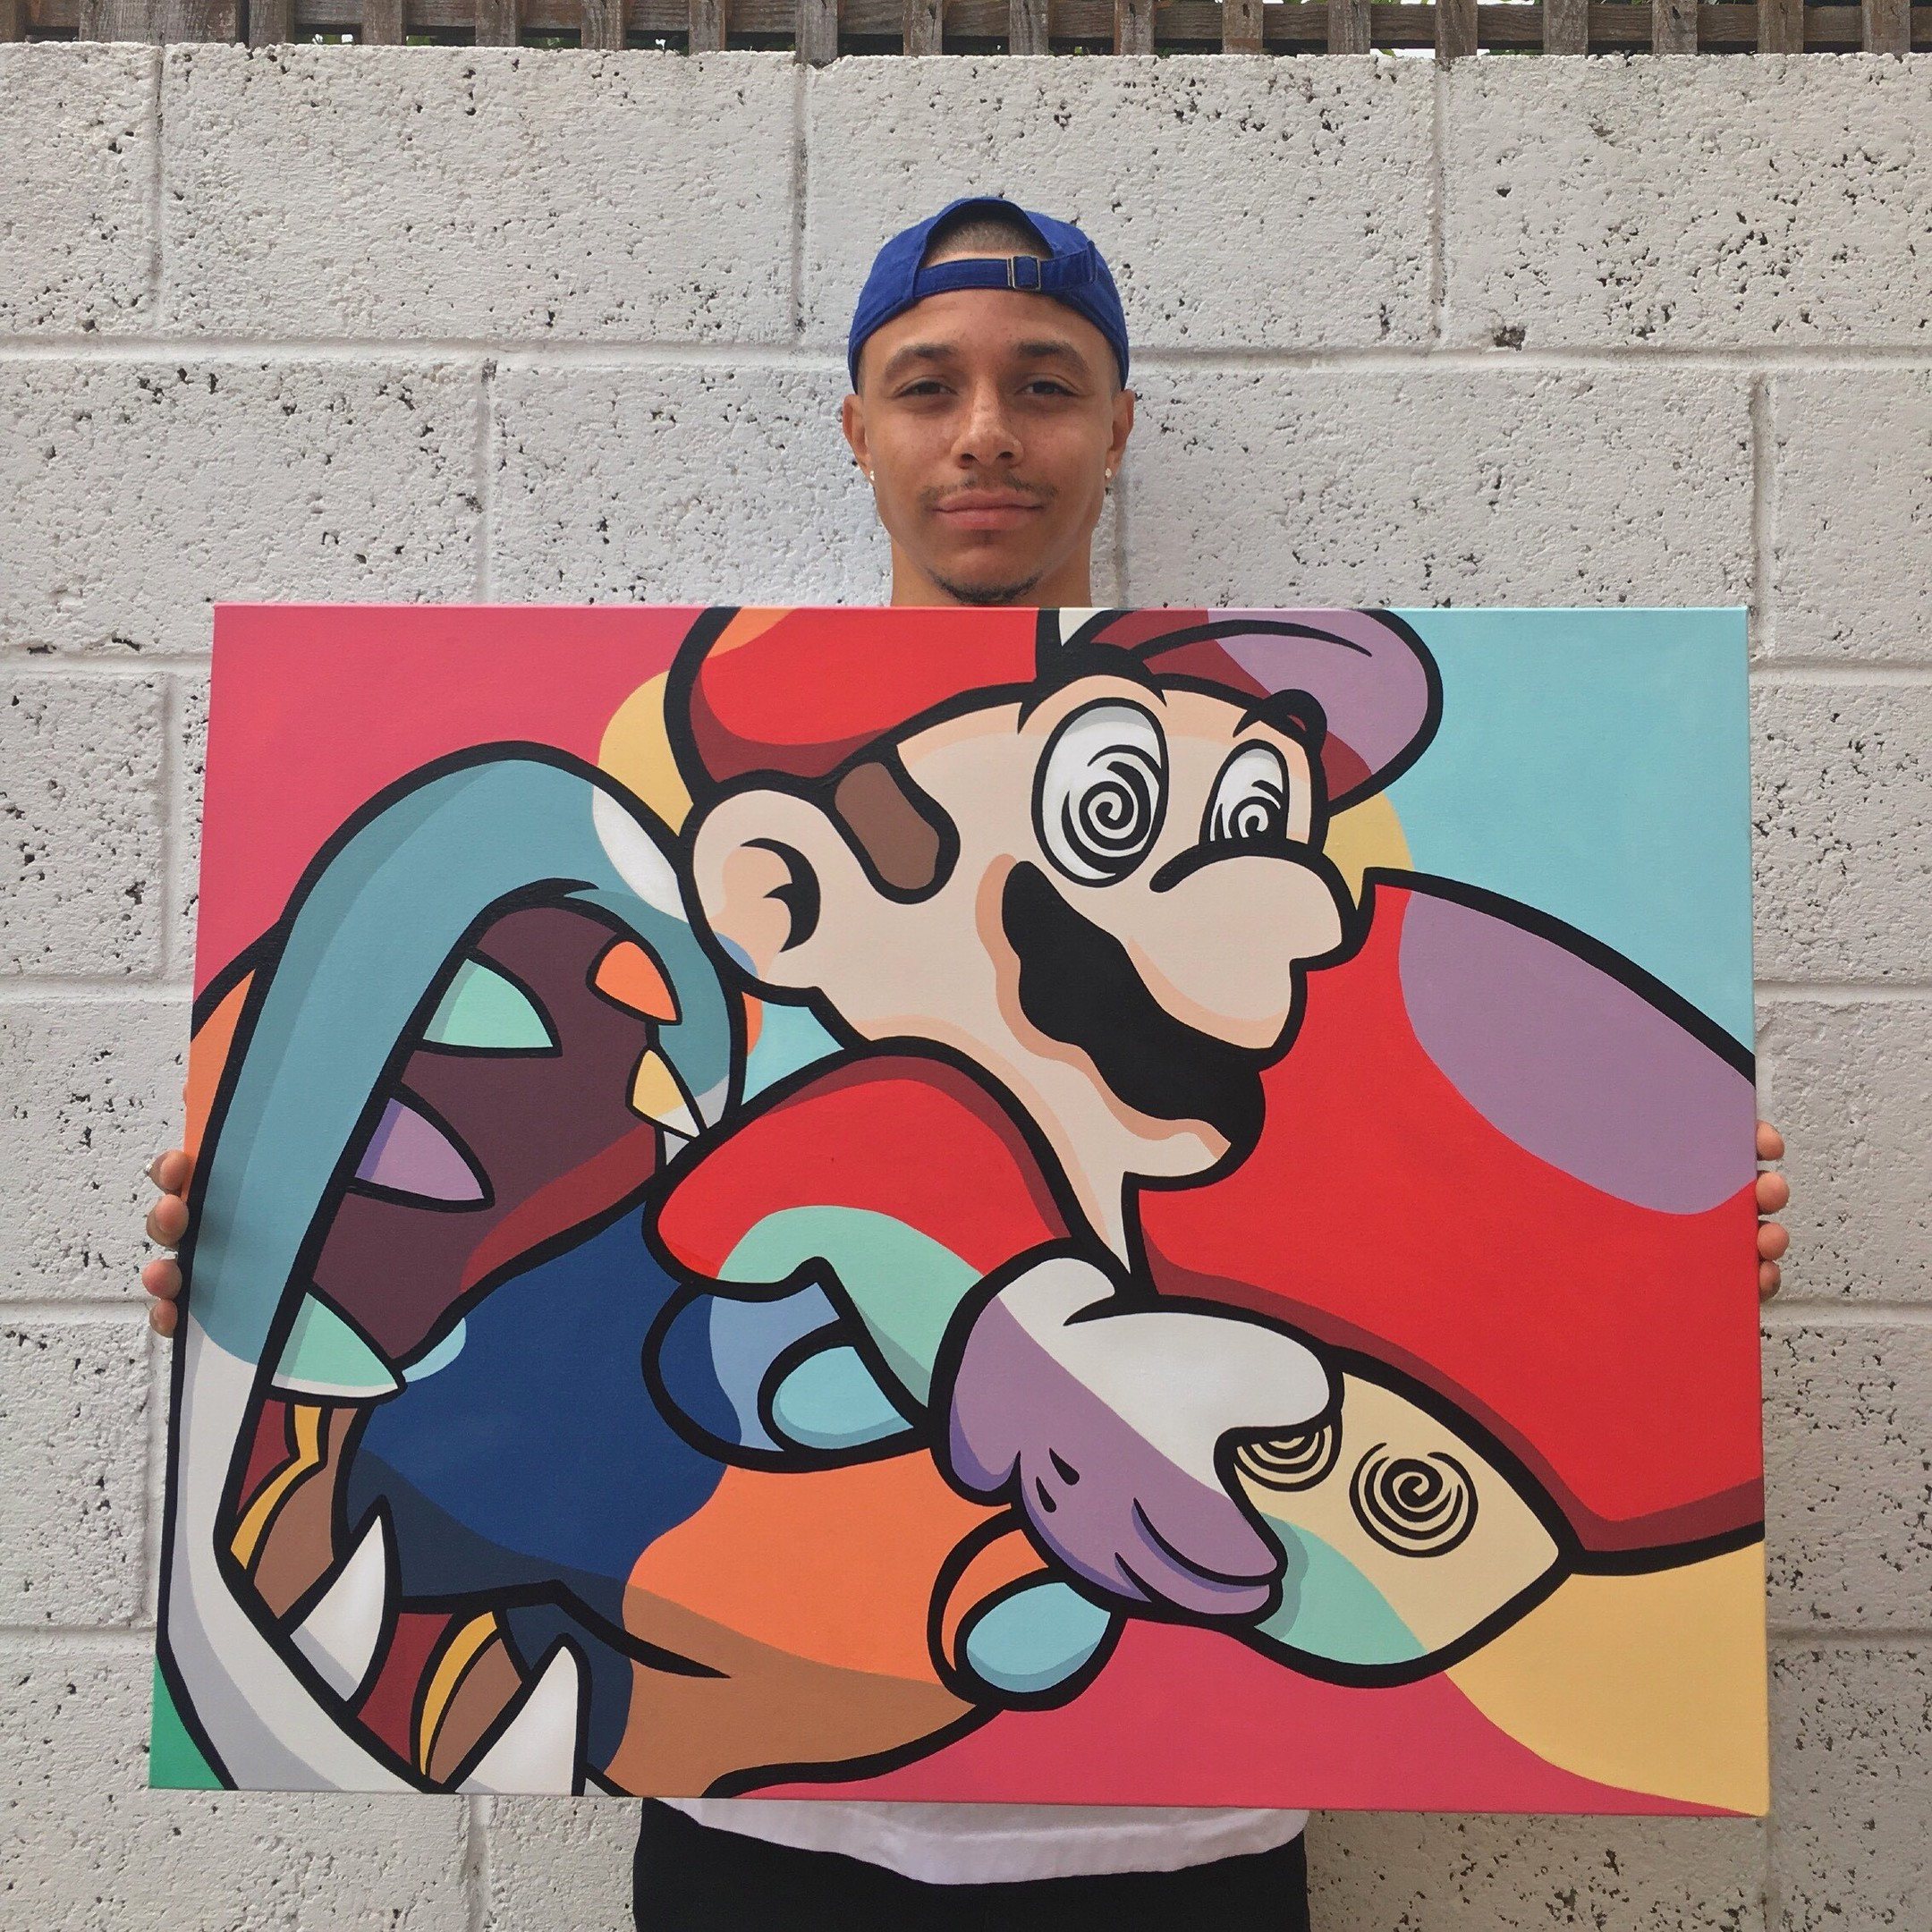 Leighton with one of his pop art creations.